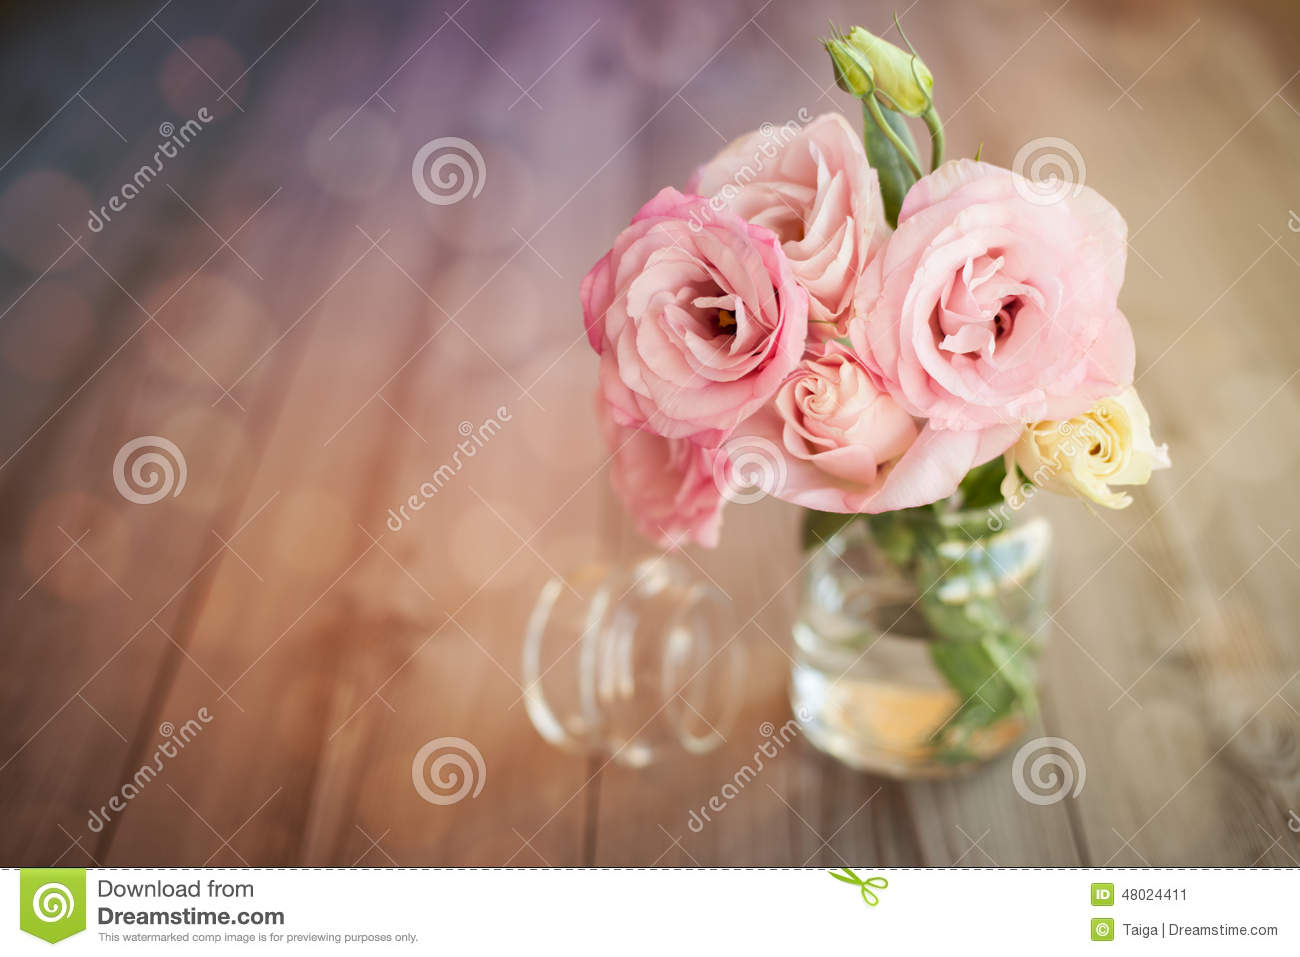 Colorful still life with roses in glass vase